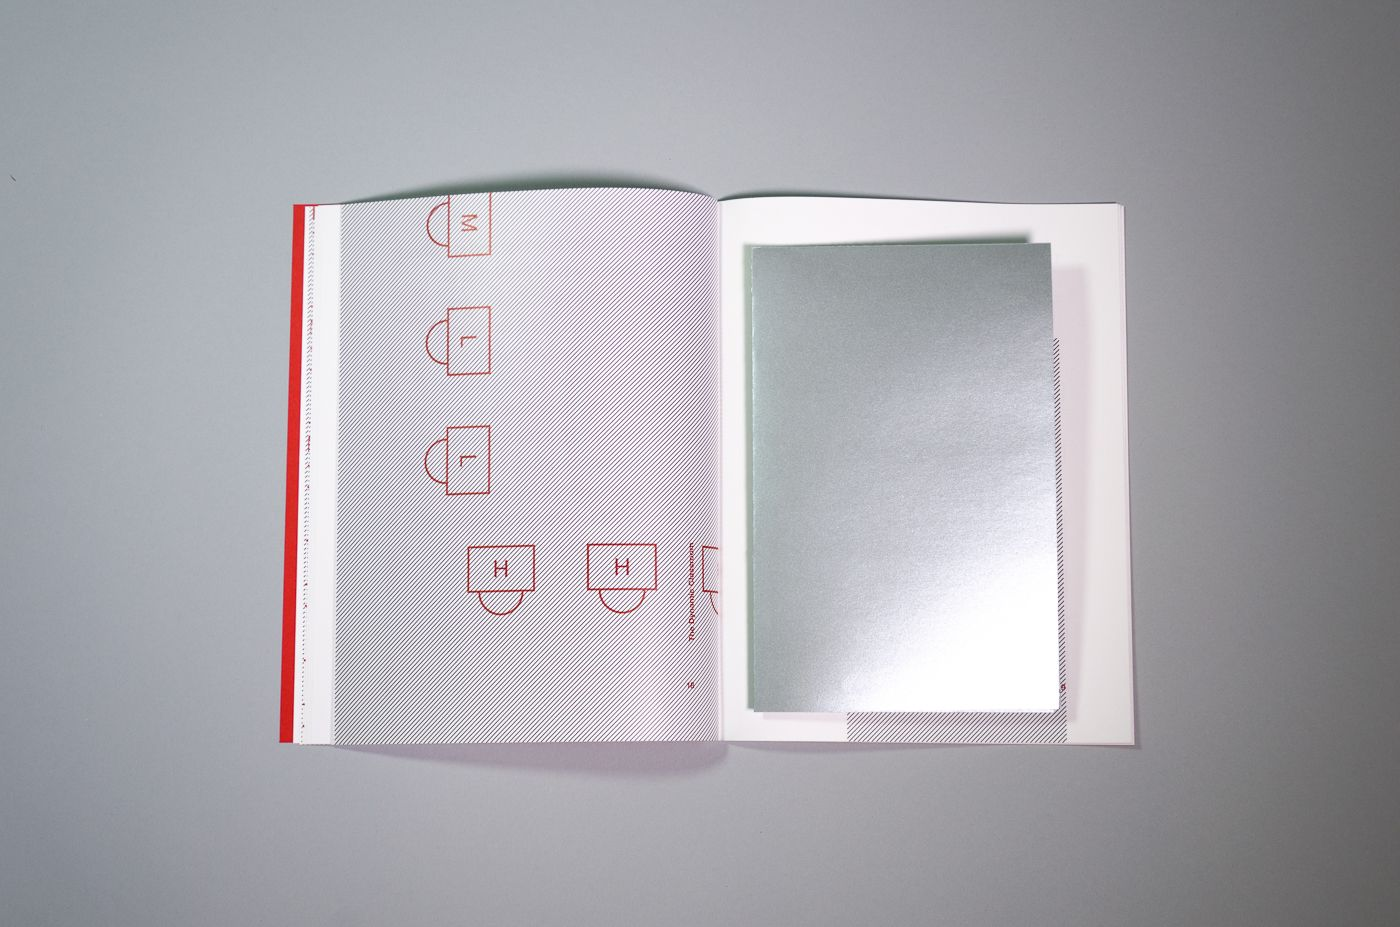 A folded poster printed on silver paper sits in the center of the book.